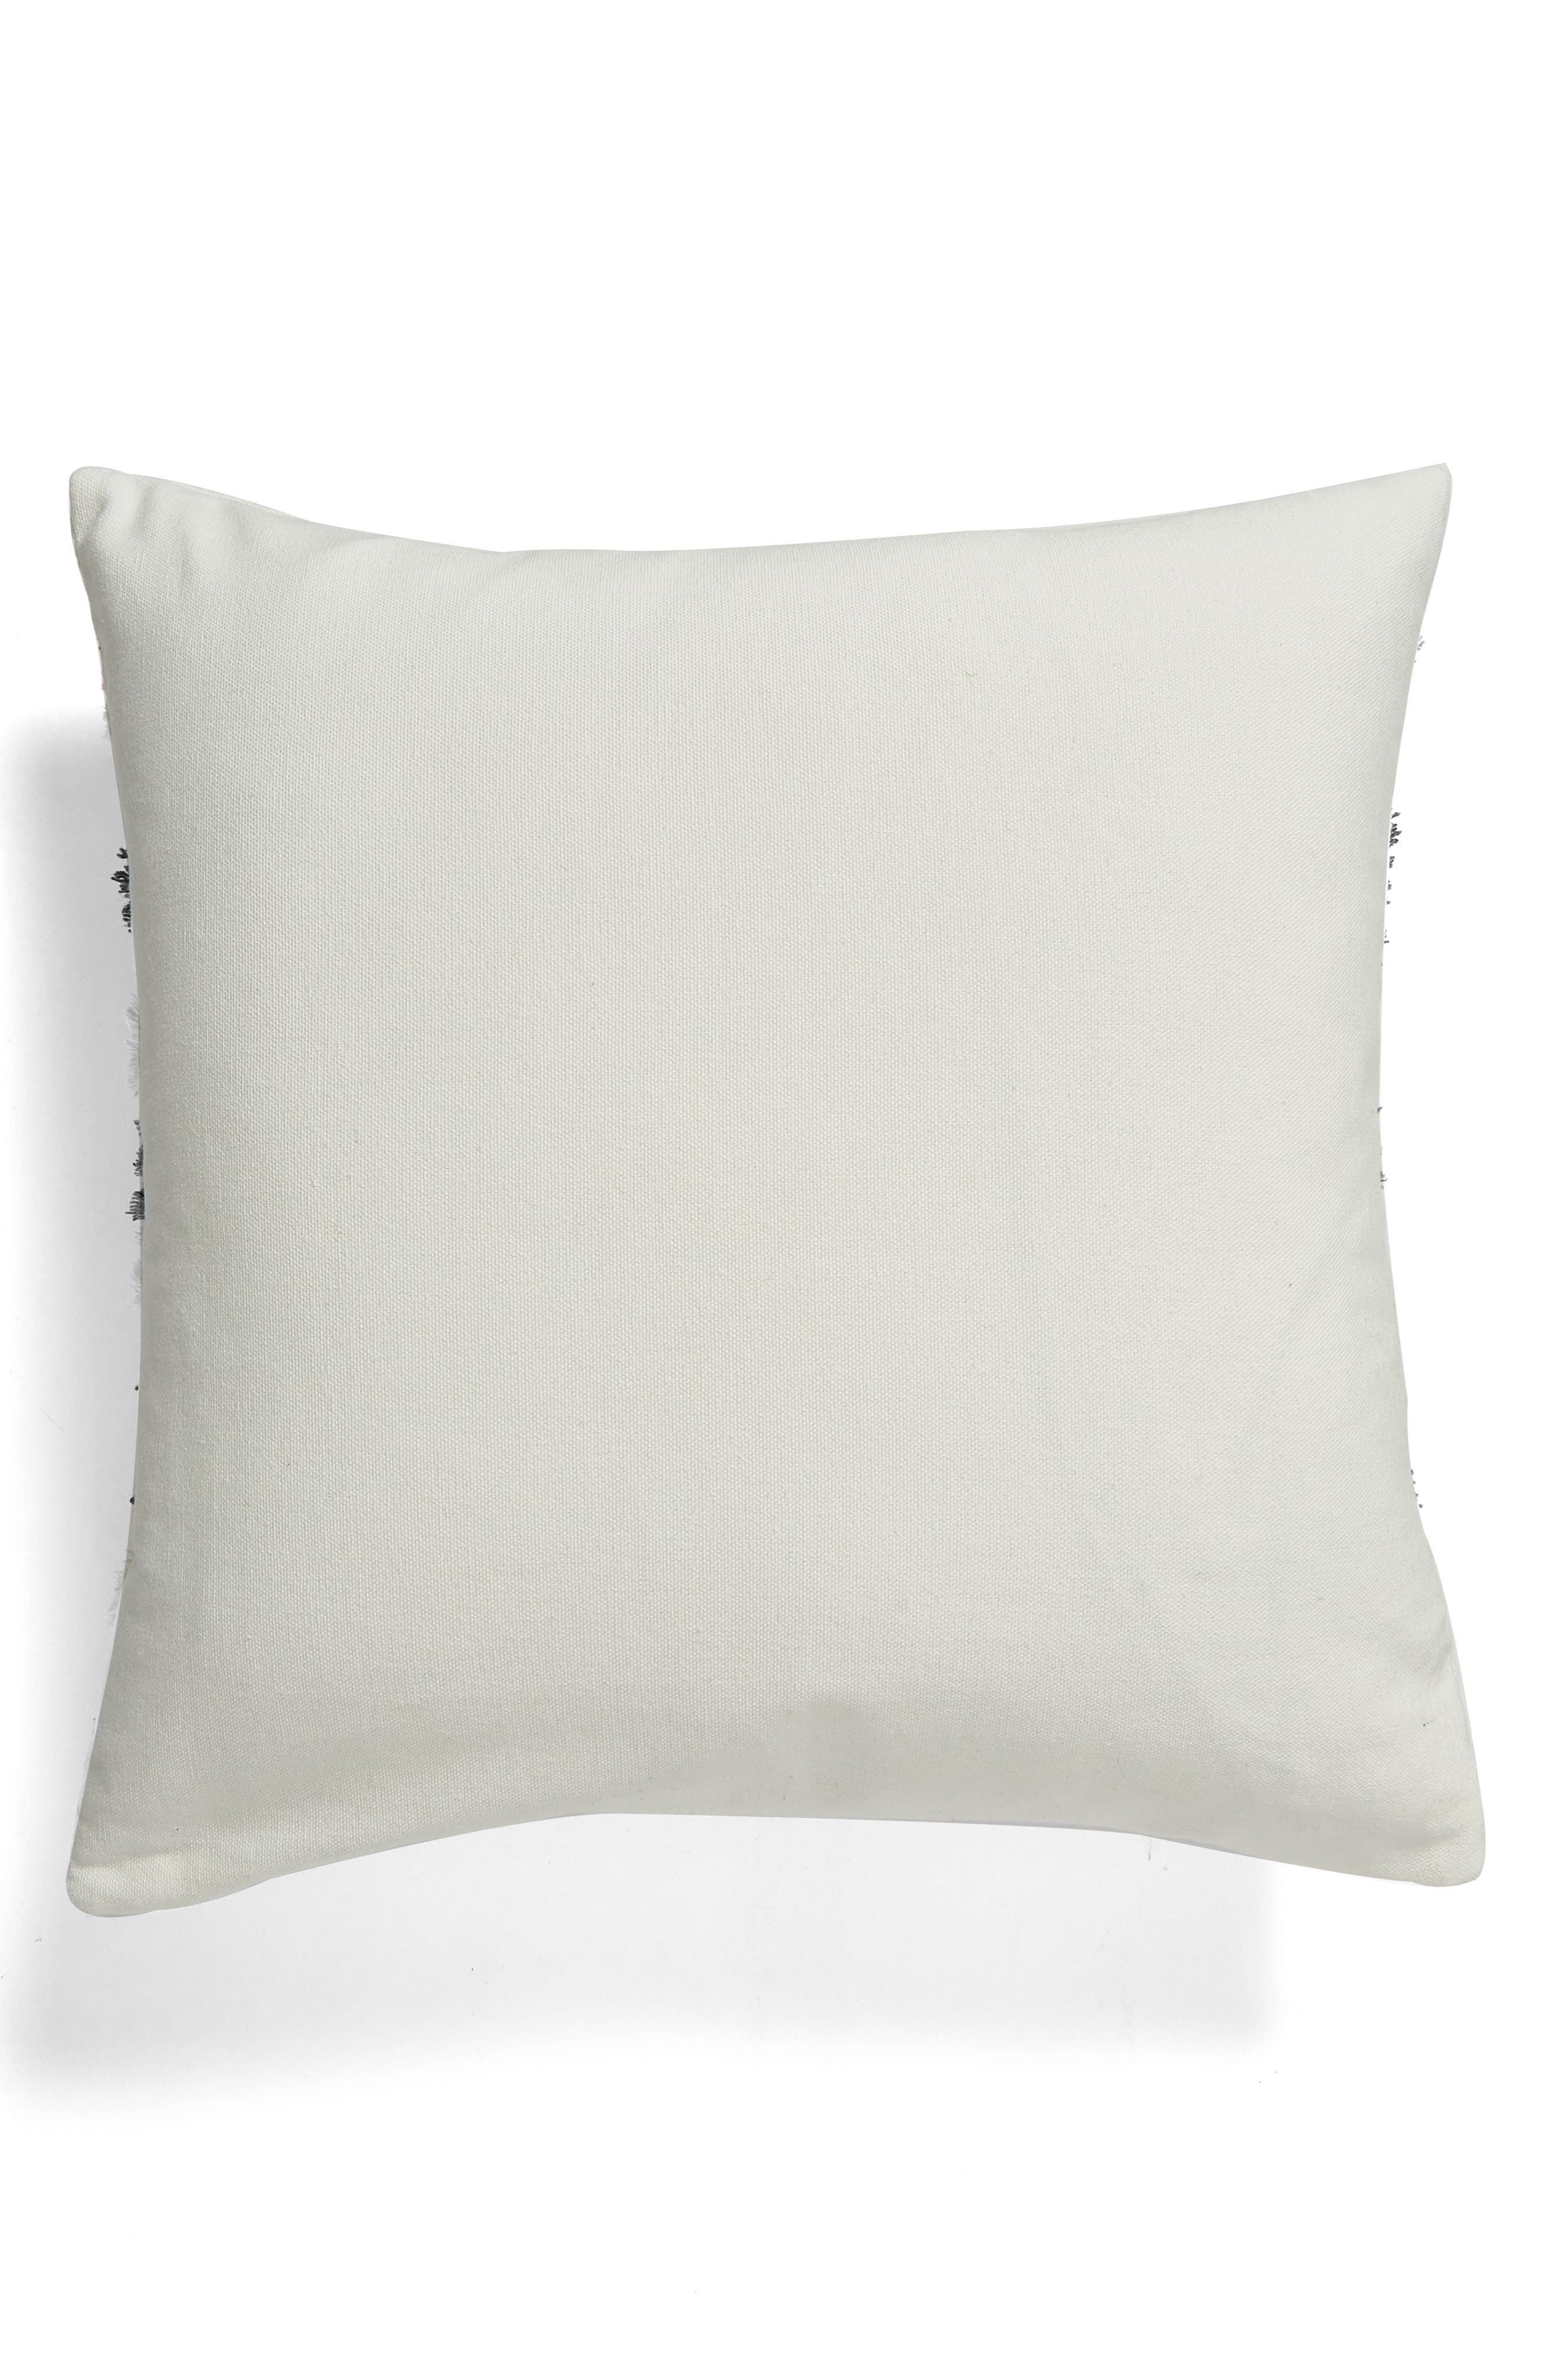 Tufted Diamond Accent Pillow,                             Alternate thumbnail 2, color,                             GREY